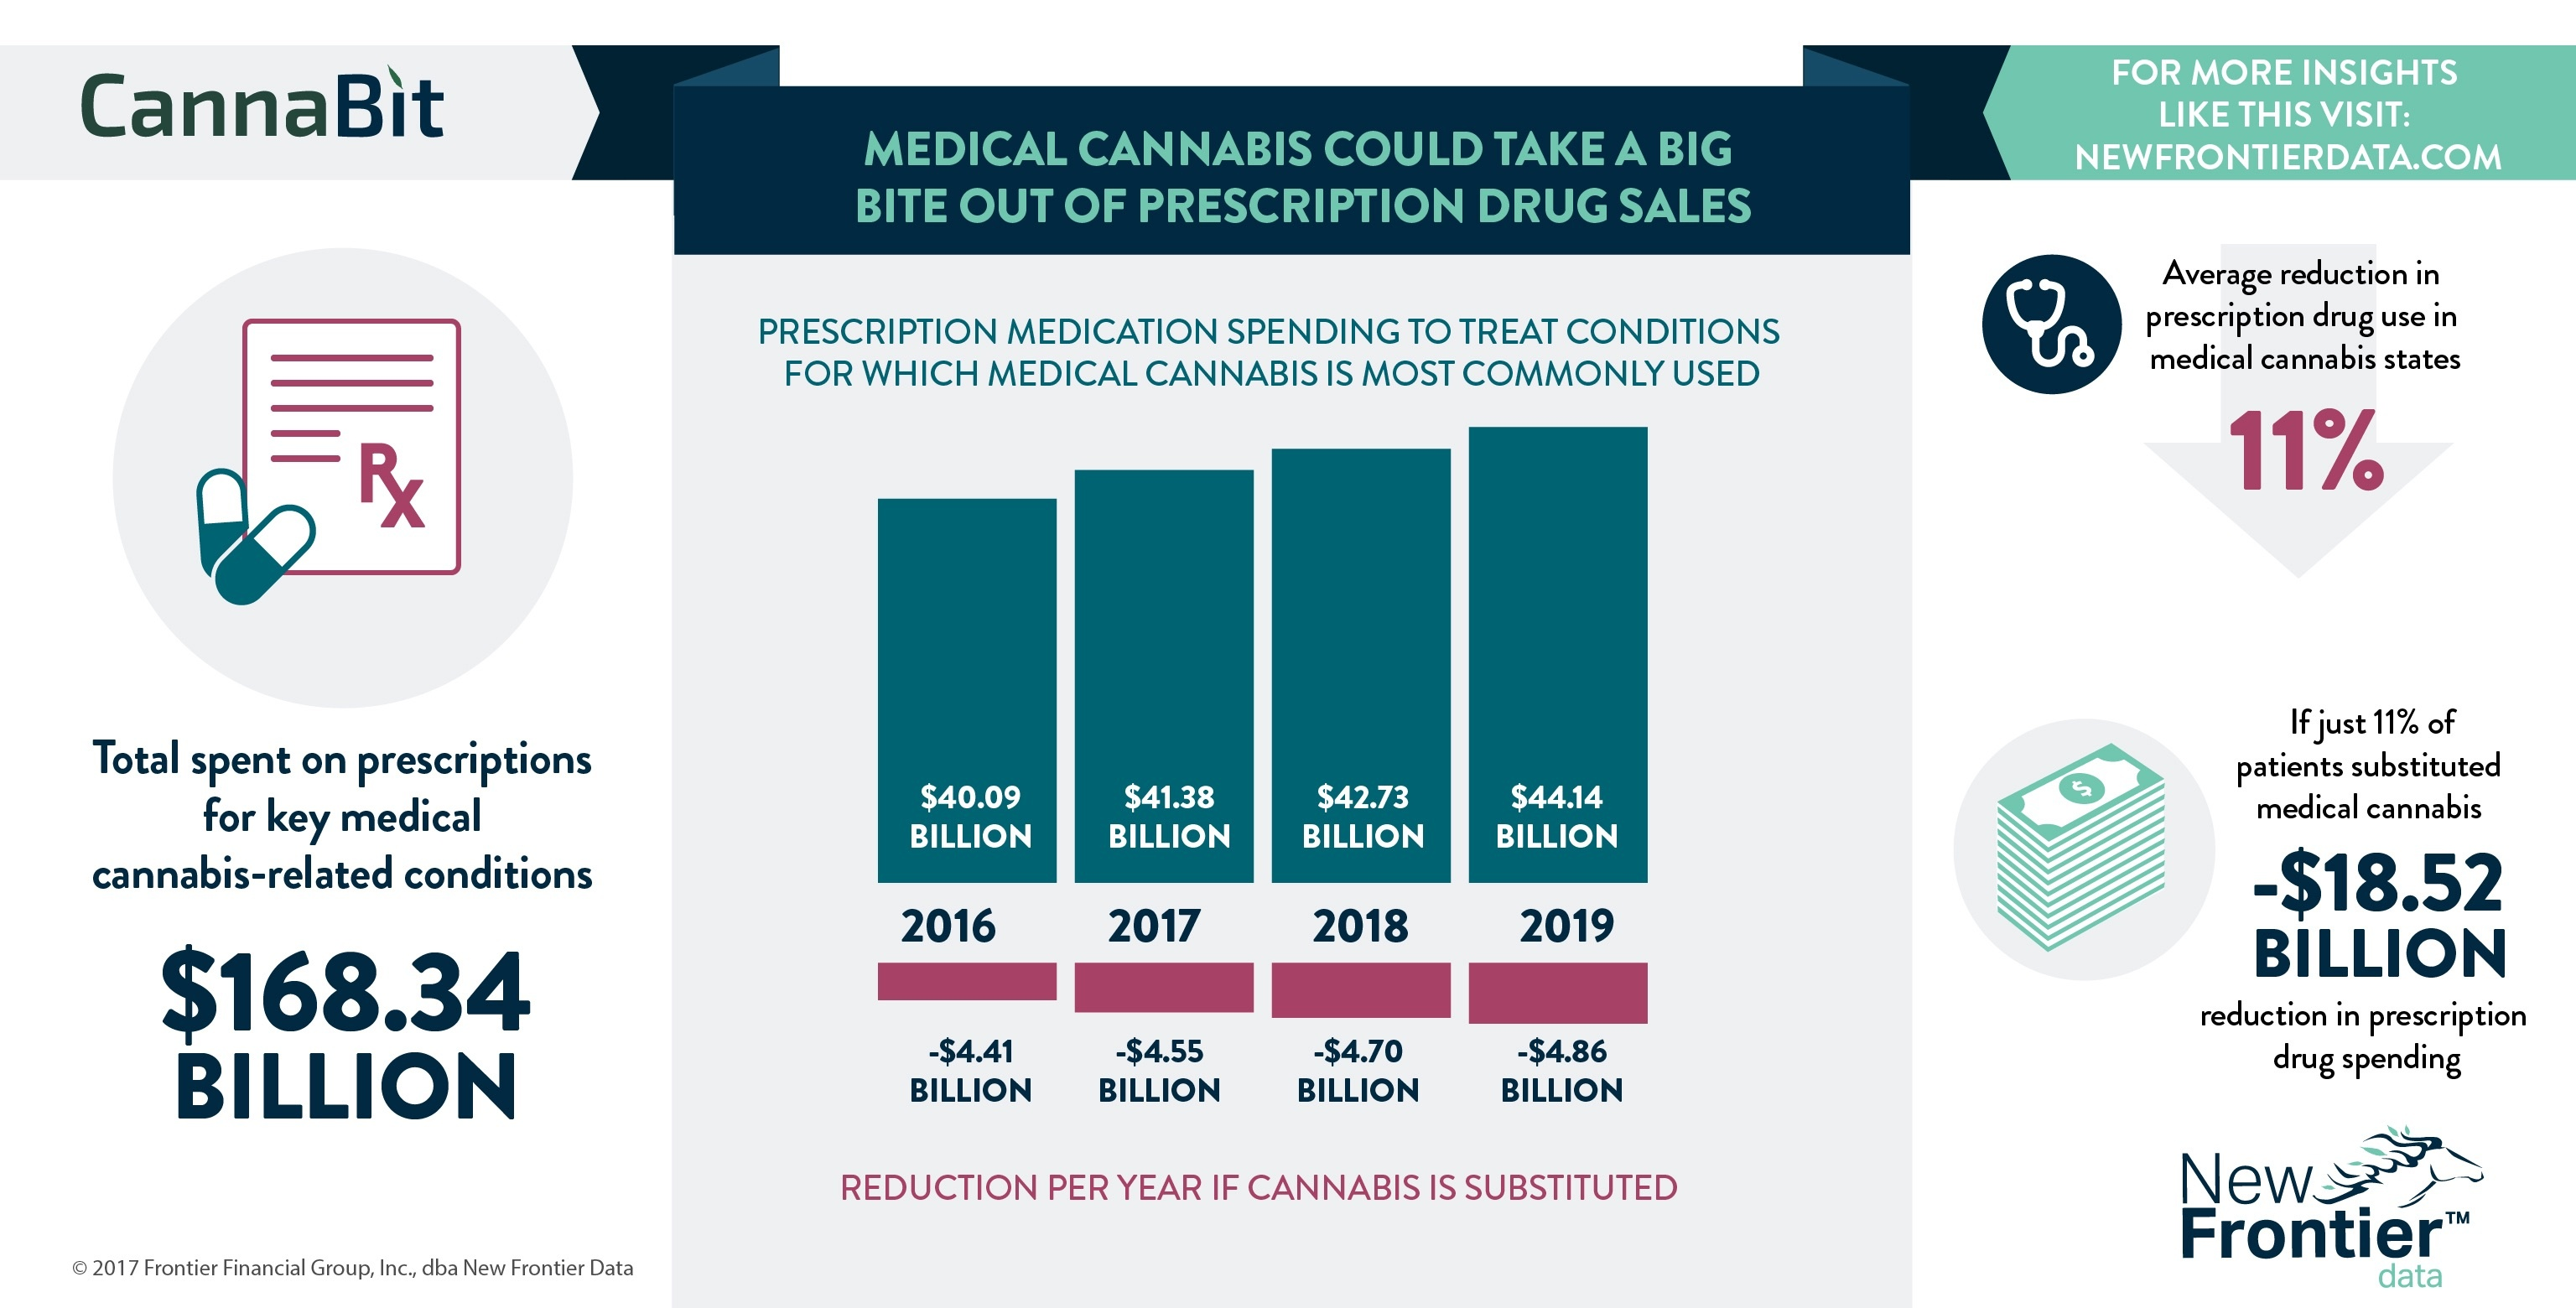 Cannabit: Medical Cannabis Could Take a Big Bite Out of Pharmaceutical Sales/ 05212017